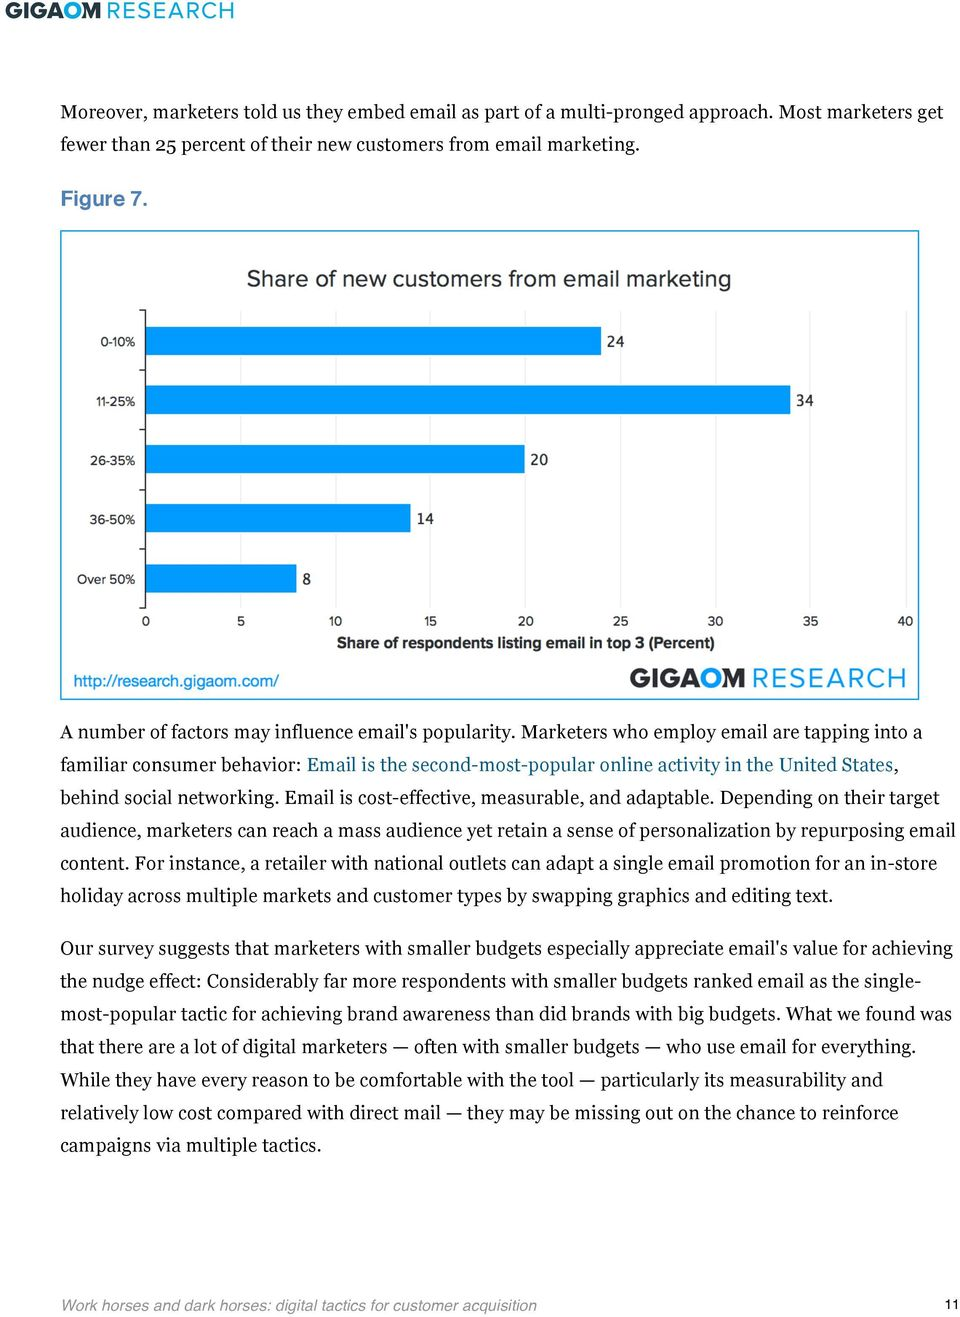 Marketers who employ email are tapping into a familiar consumer behavior: Email is the second-most-popular online activity in the United States, behind social networking.